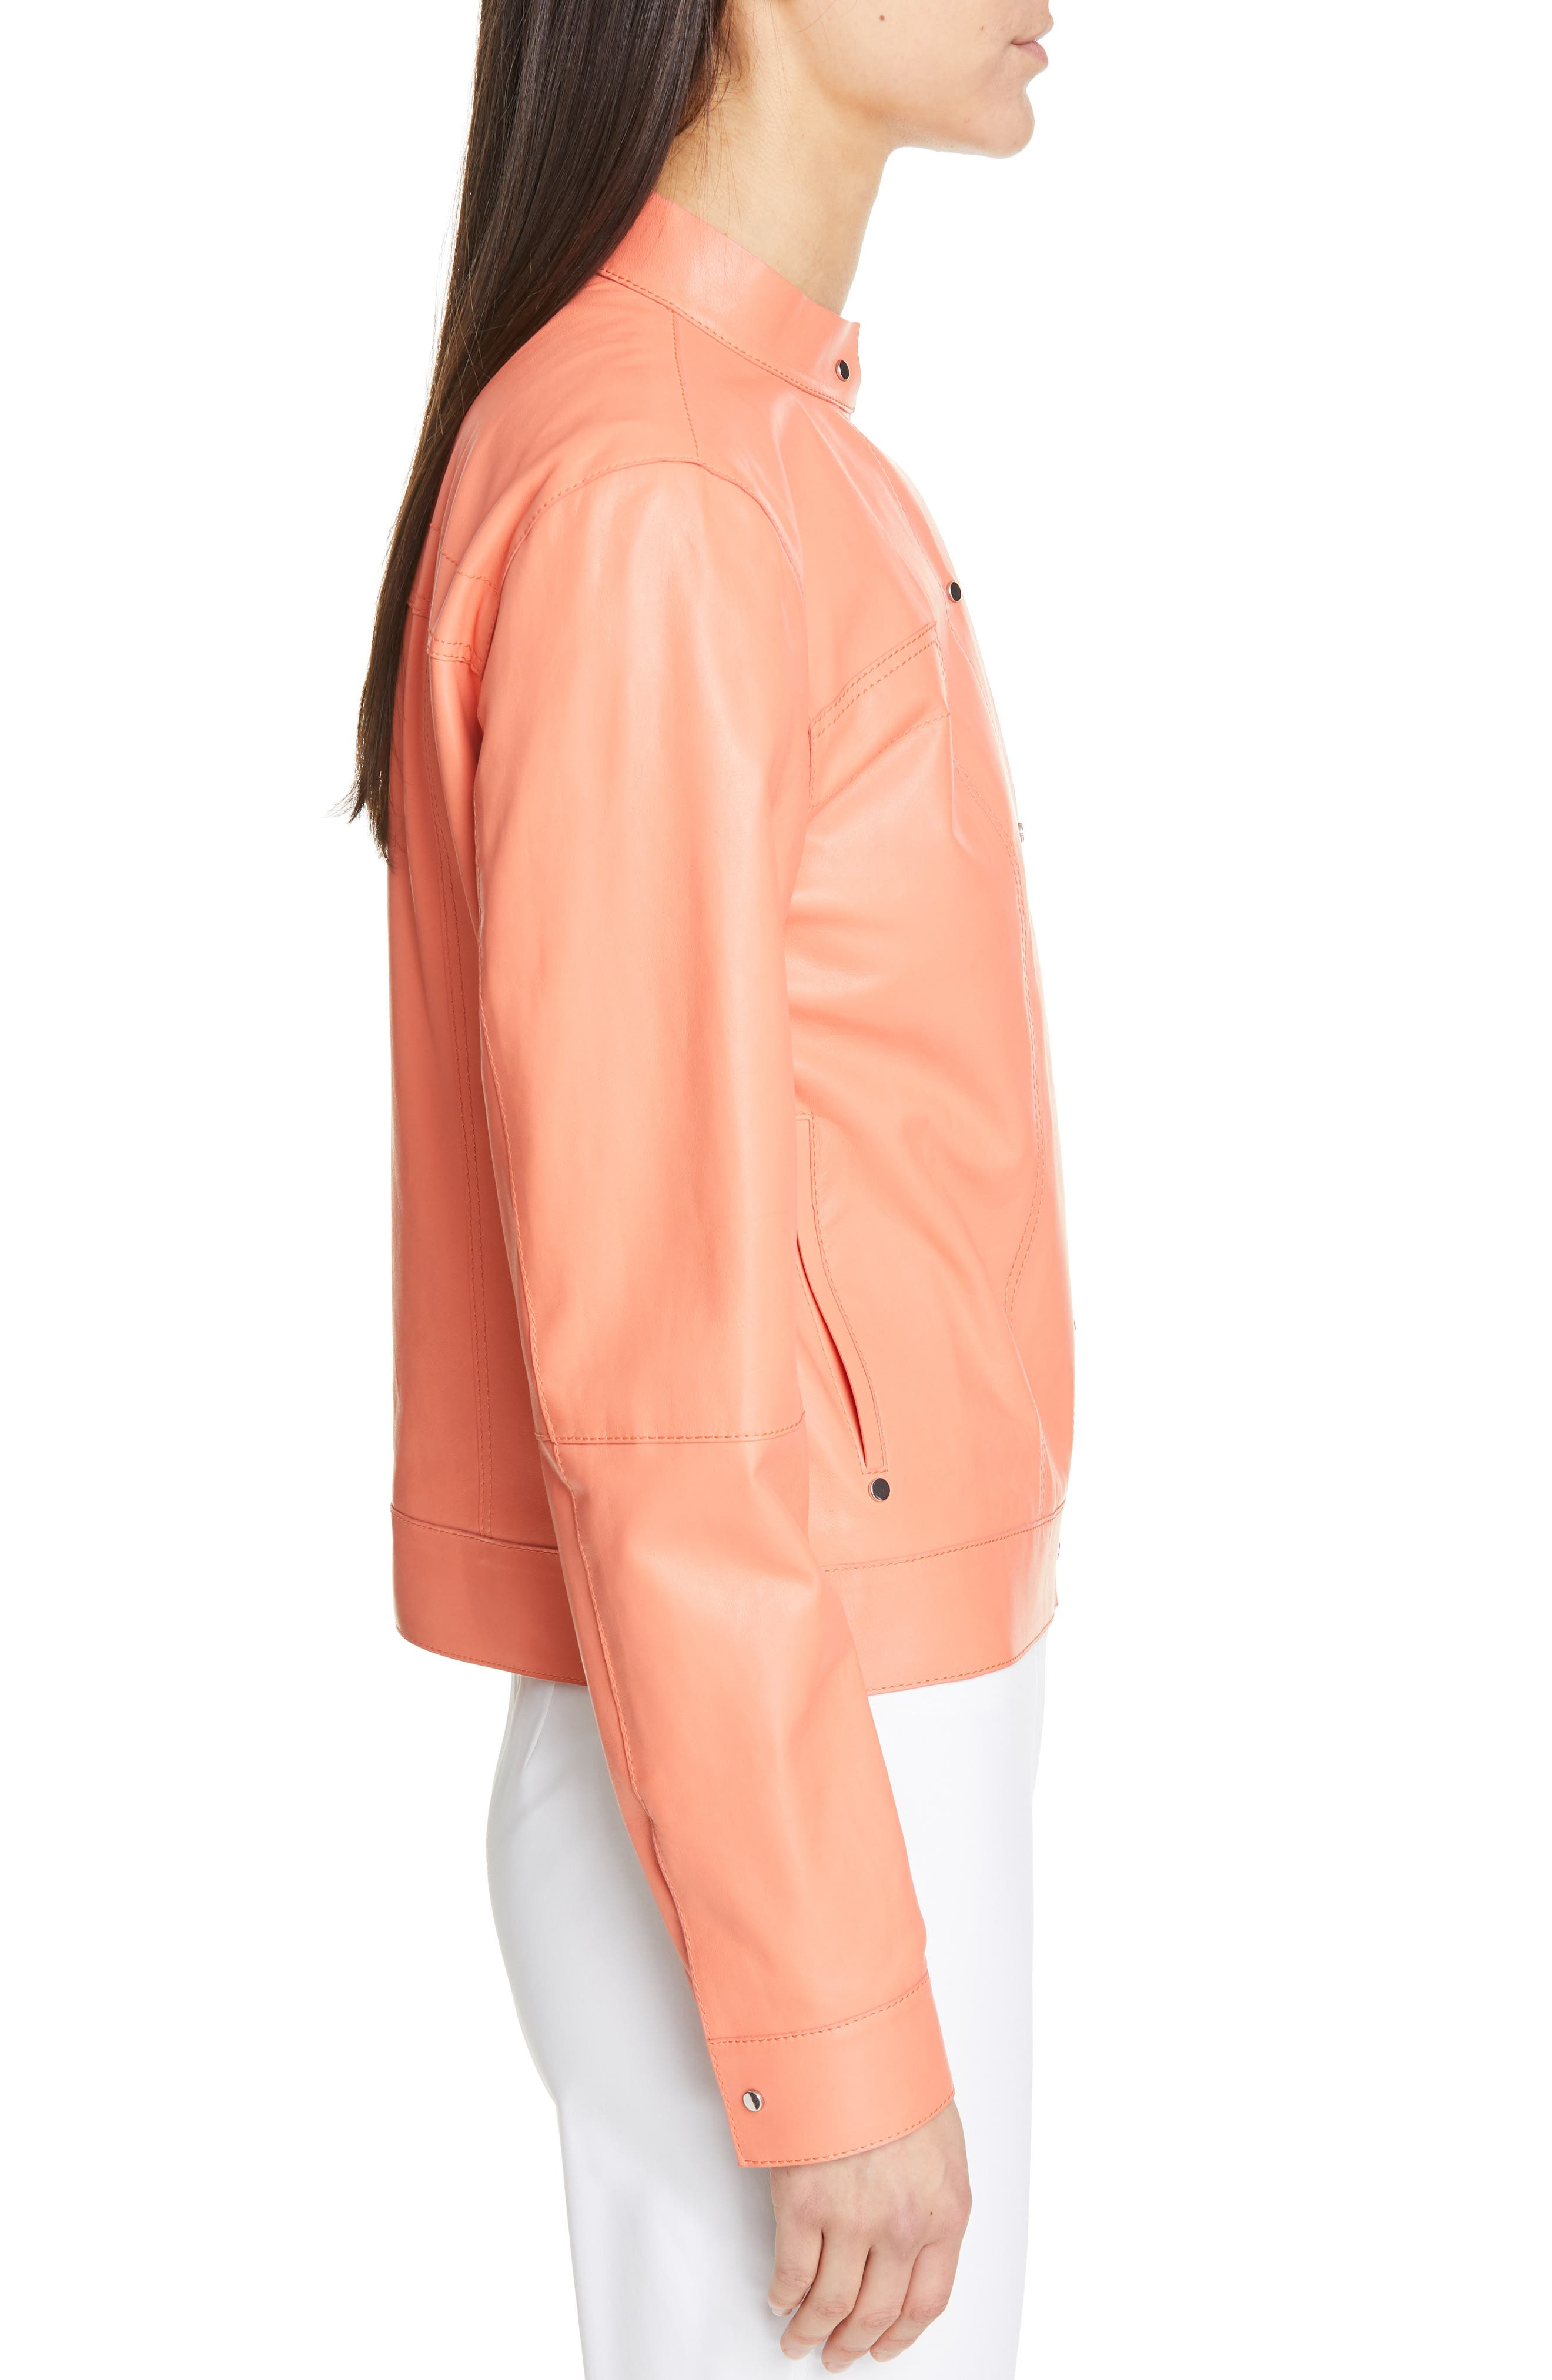 LAFAYETTE 148 NEW YORK, Galicia Leather Jacket, Alternate thumbnail 3, color, PEACH ROSE